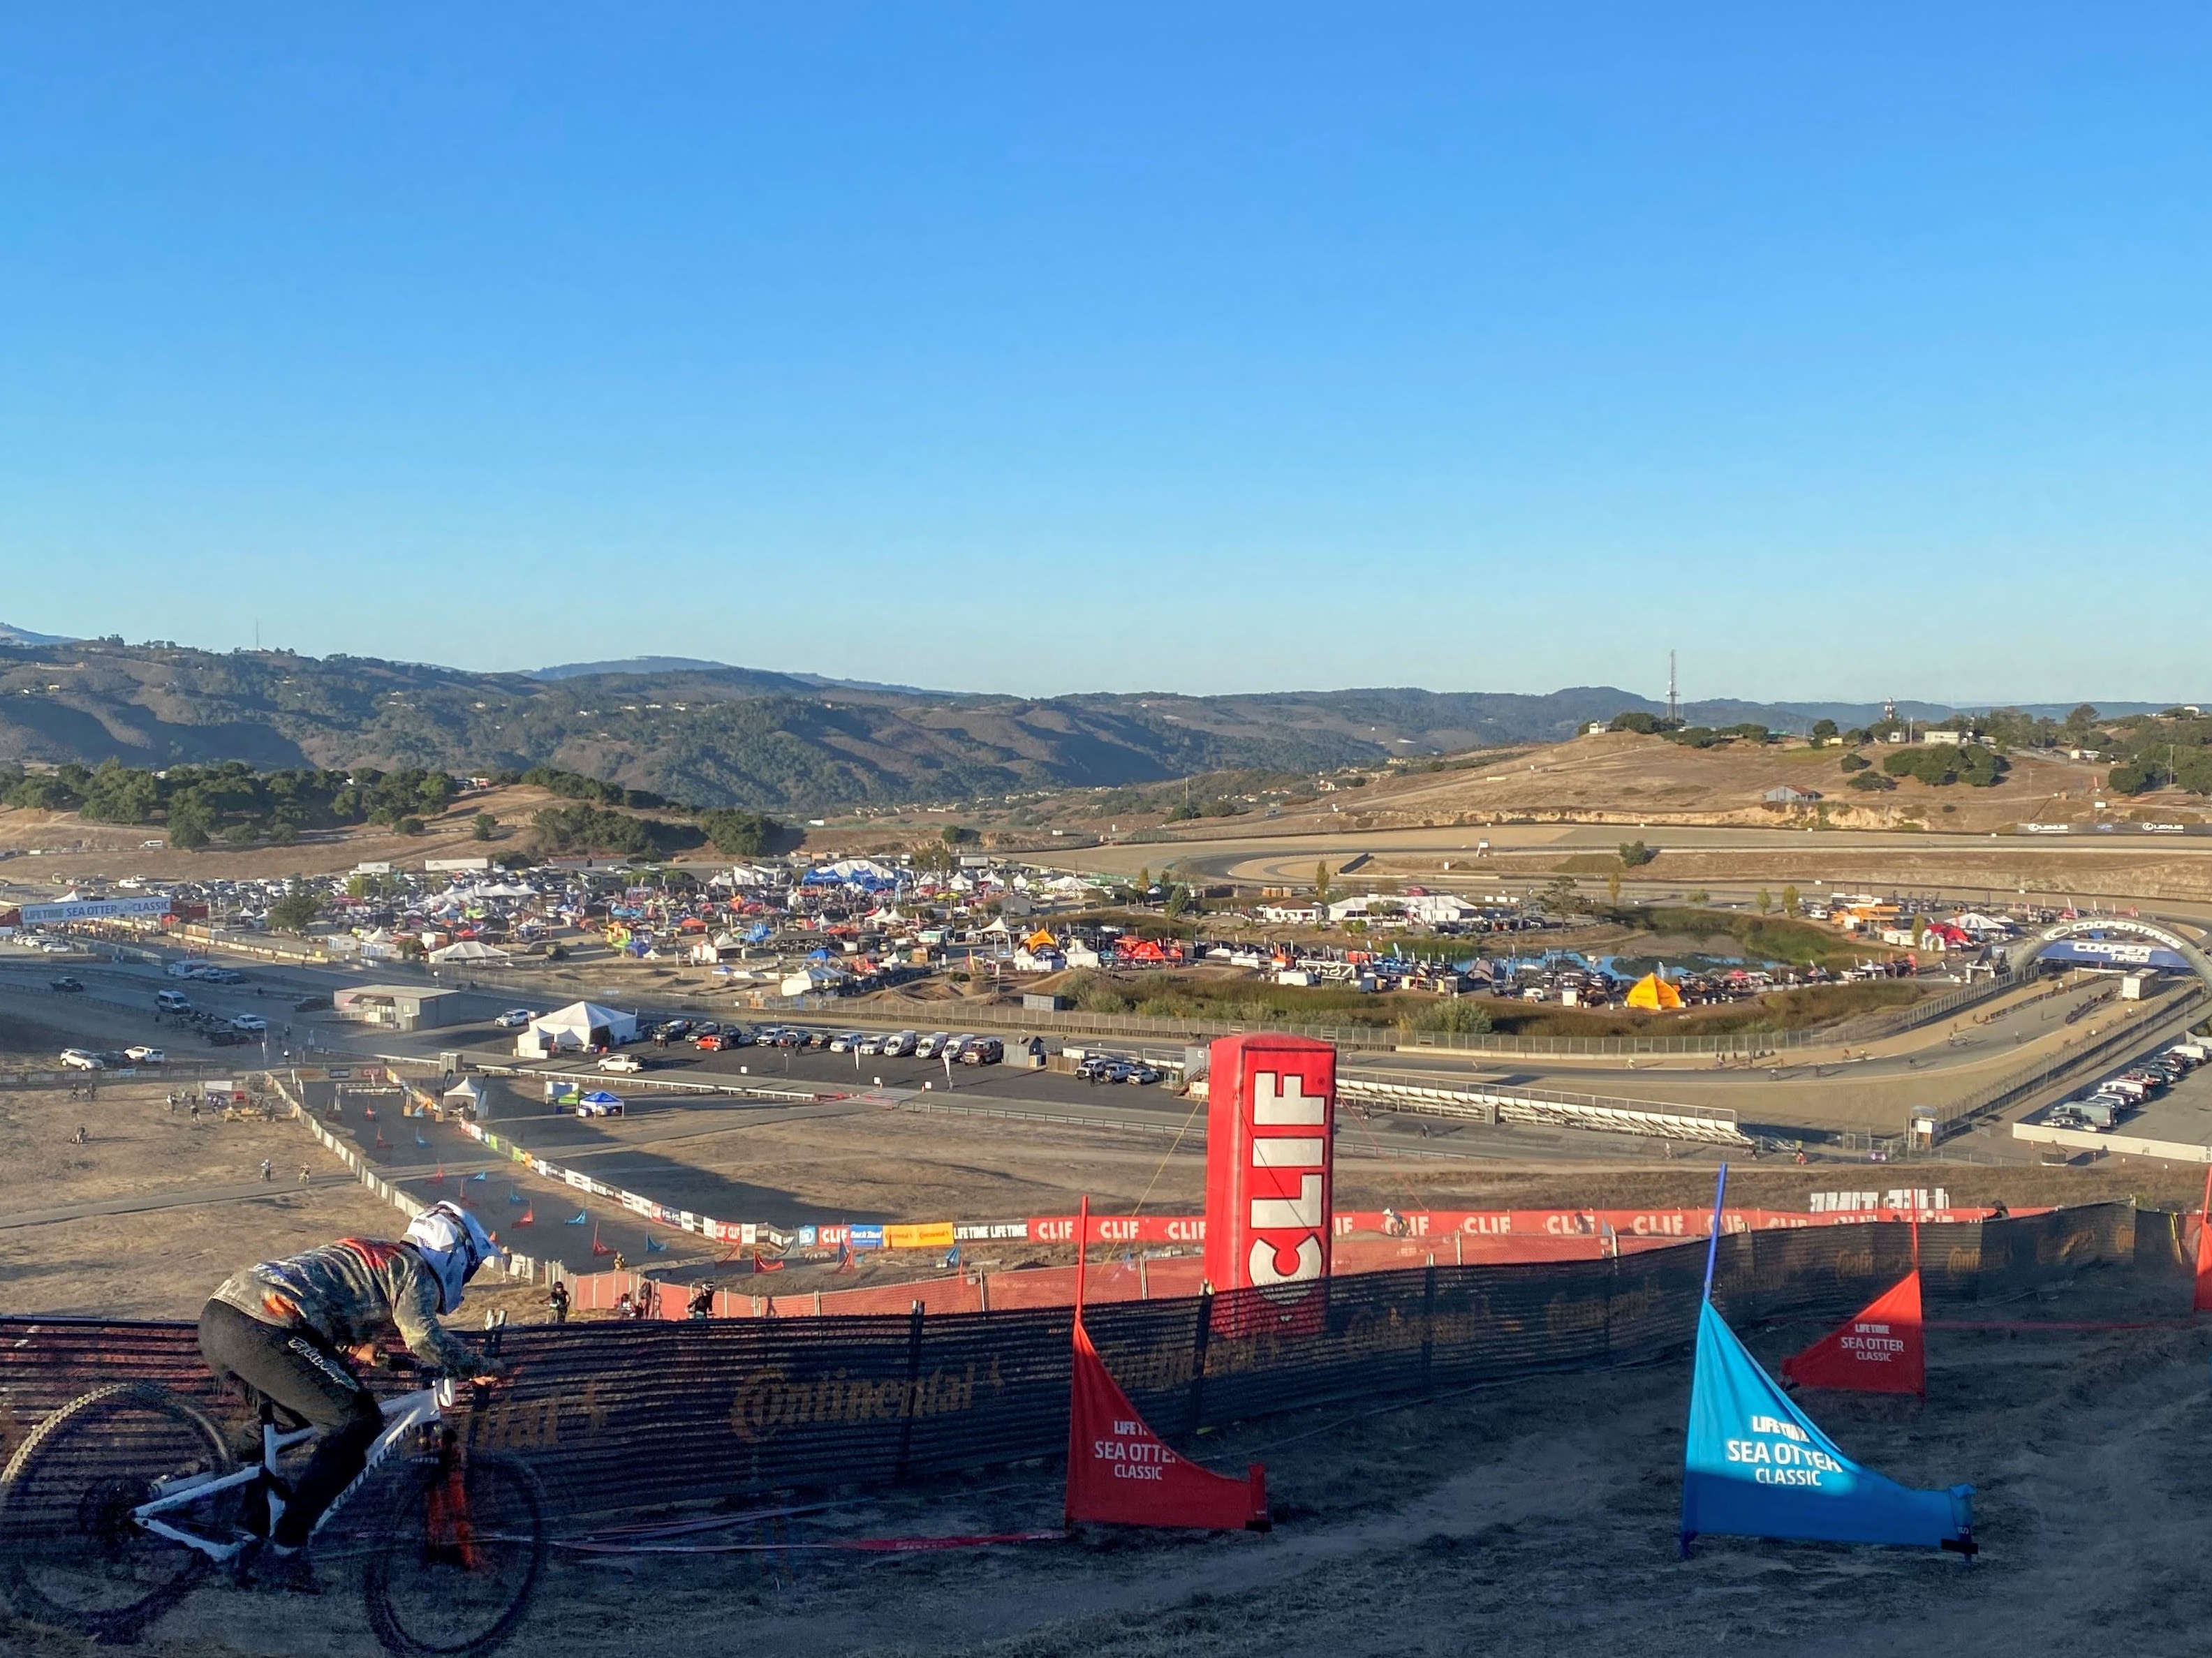 Morning practice at the Sea Otter Classic